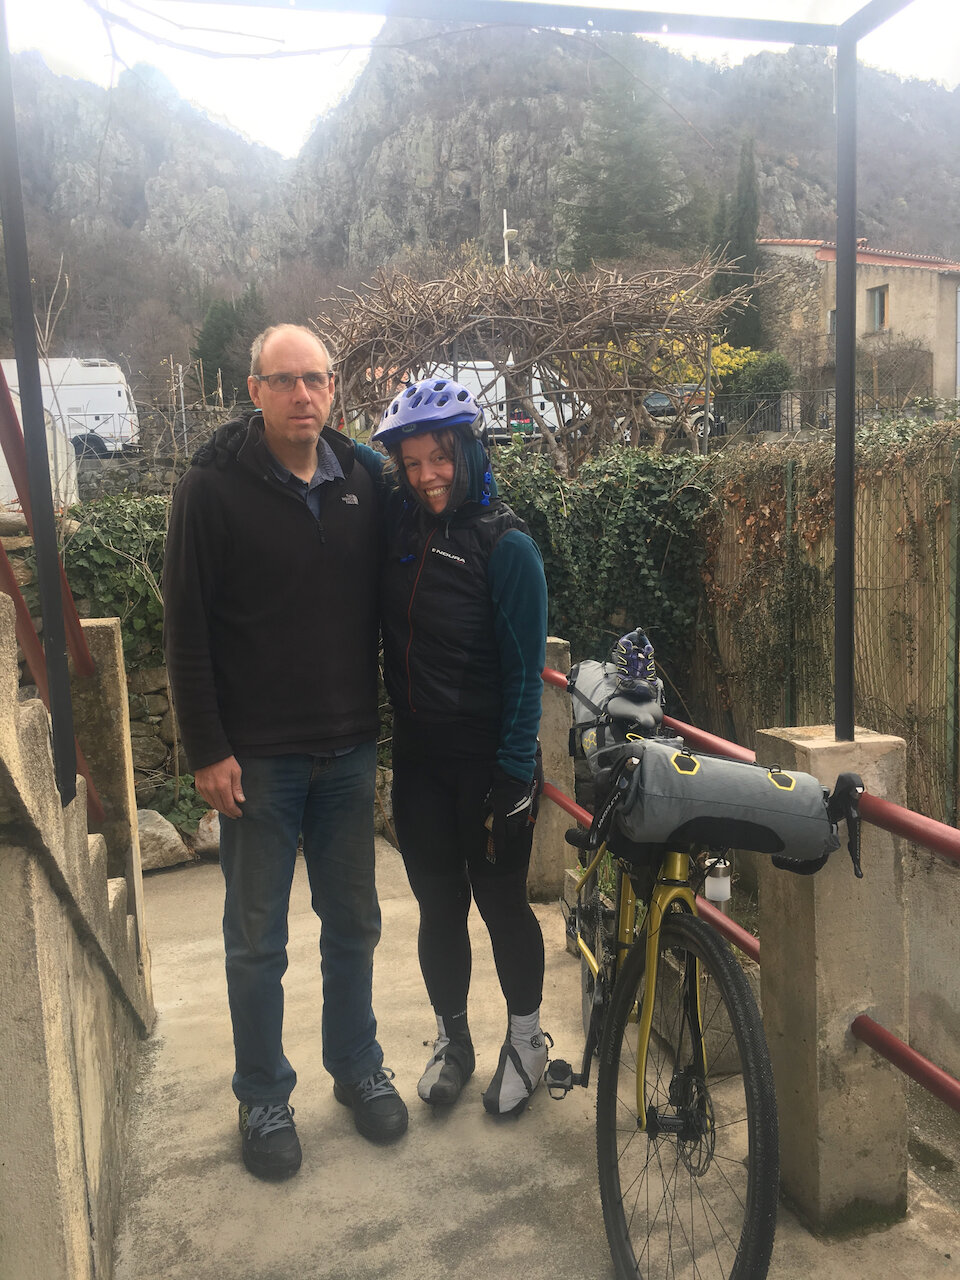 Jenny arrived at our house on her bike in trainers unclipped into her pedals having spent the night in the cold snow with little sleep stating she just couldn't face taking her shoes off and clipping in before setting off…